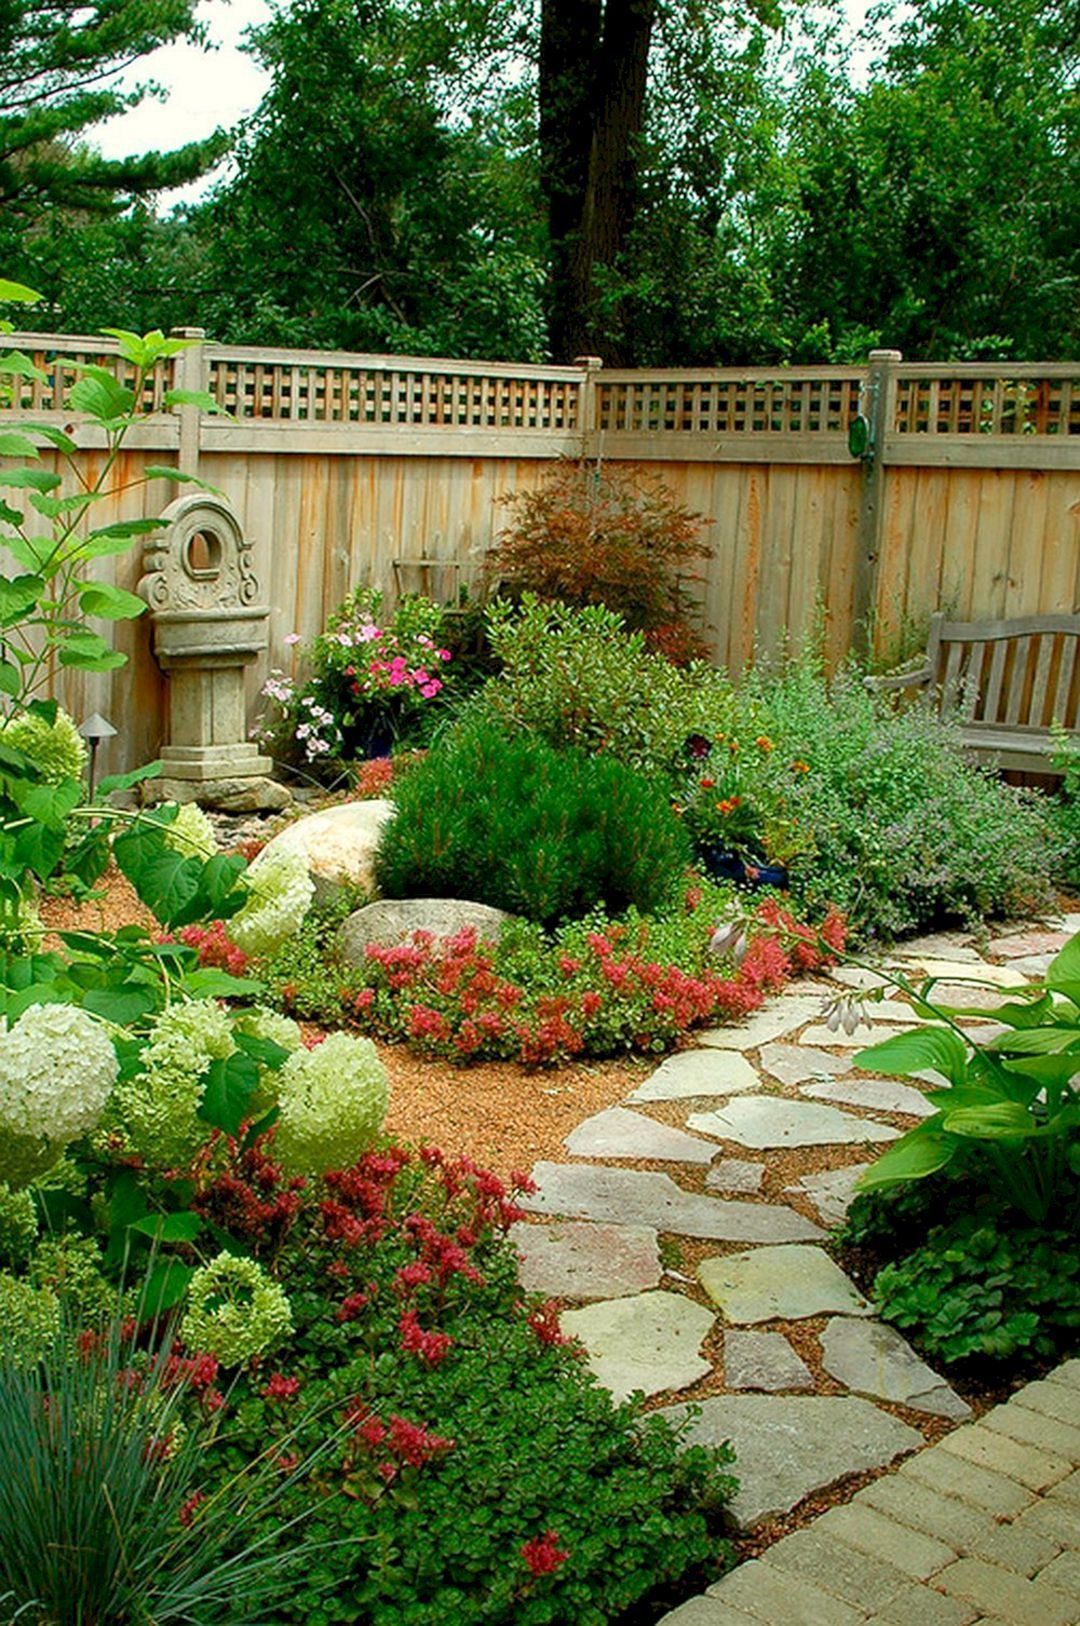 34 Simple But Effective Front Yard Landscaping Ideas On A Budget Small Front Yard Landscaping Small Backyard Landscaping Garden Landscape Design